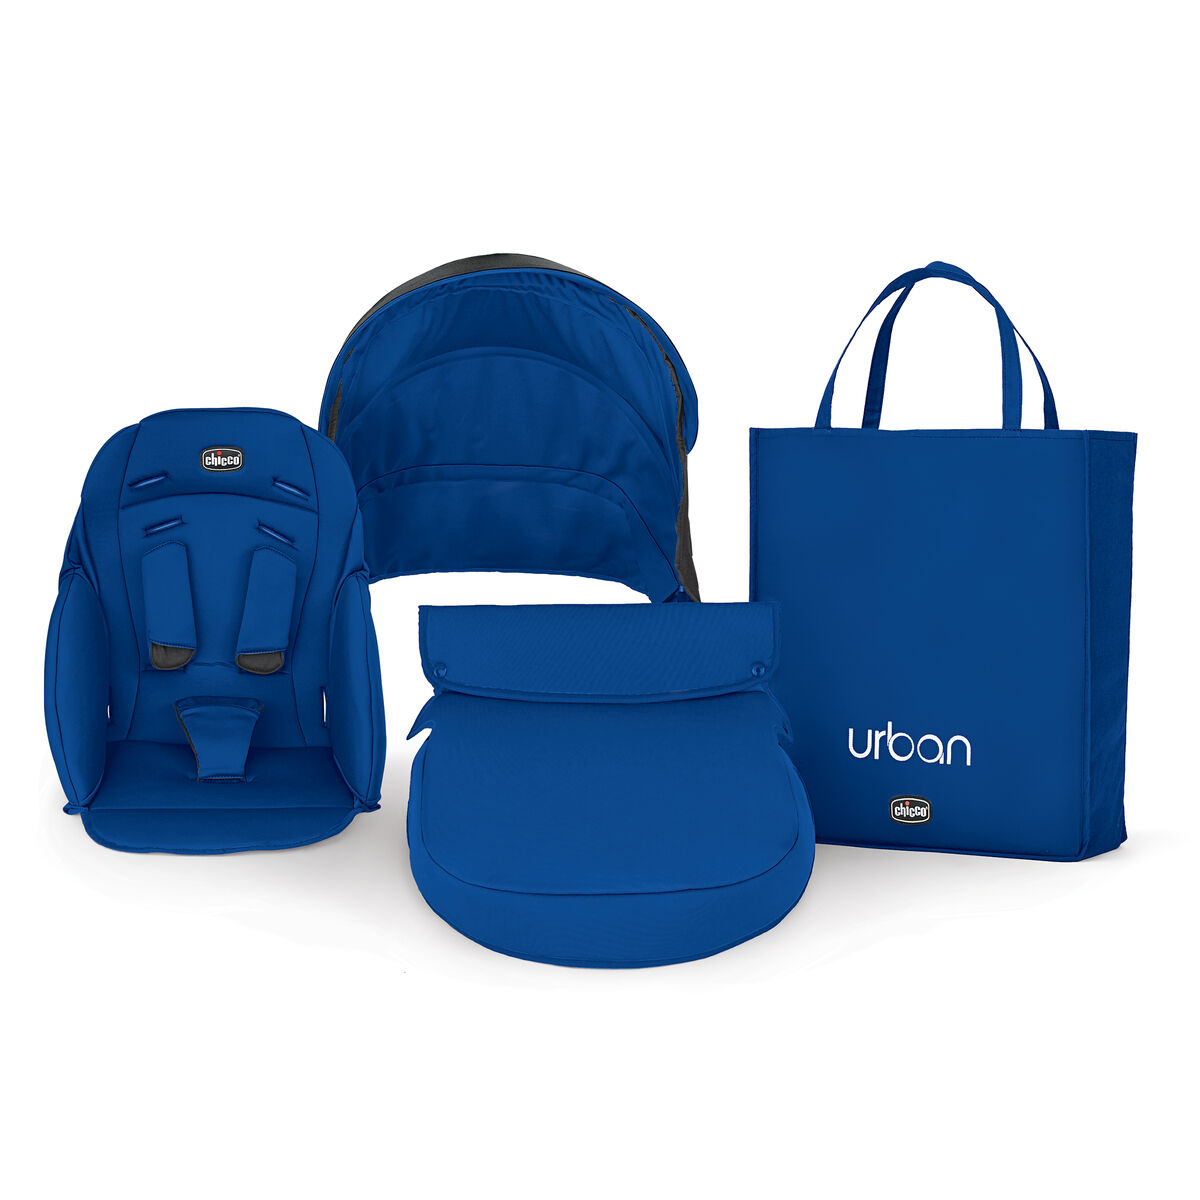 Chicco Urban Stroller Color Pack Accessory Kit Blue